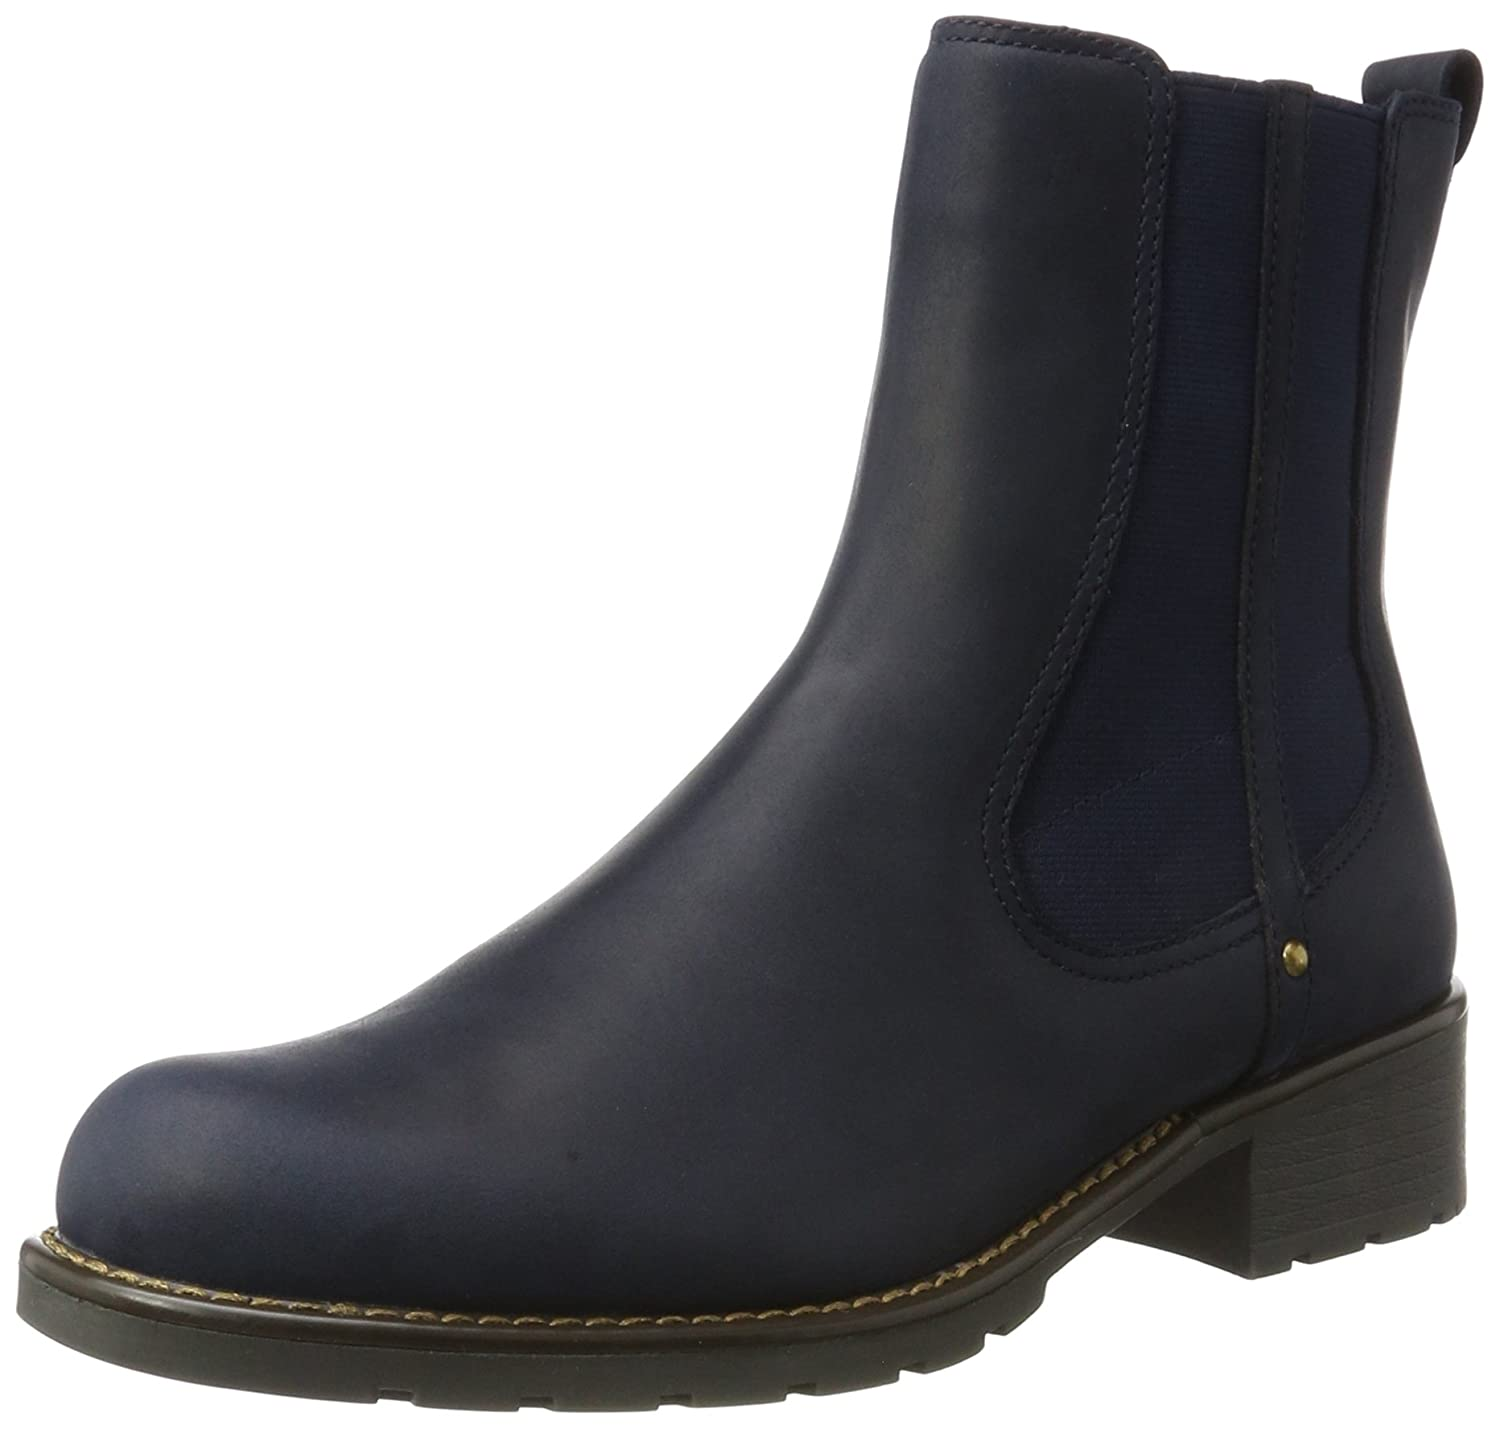 Clarks Orinoco Nubuck) Club, Bottes et Bottines Bottines (Navy Souples Femme Noir (Navy Nubuck) fc210e2 - fast-weightloss-diet.space